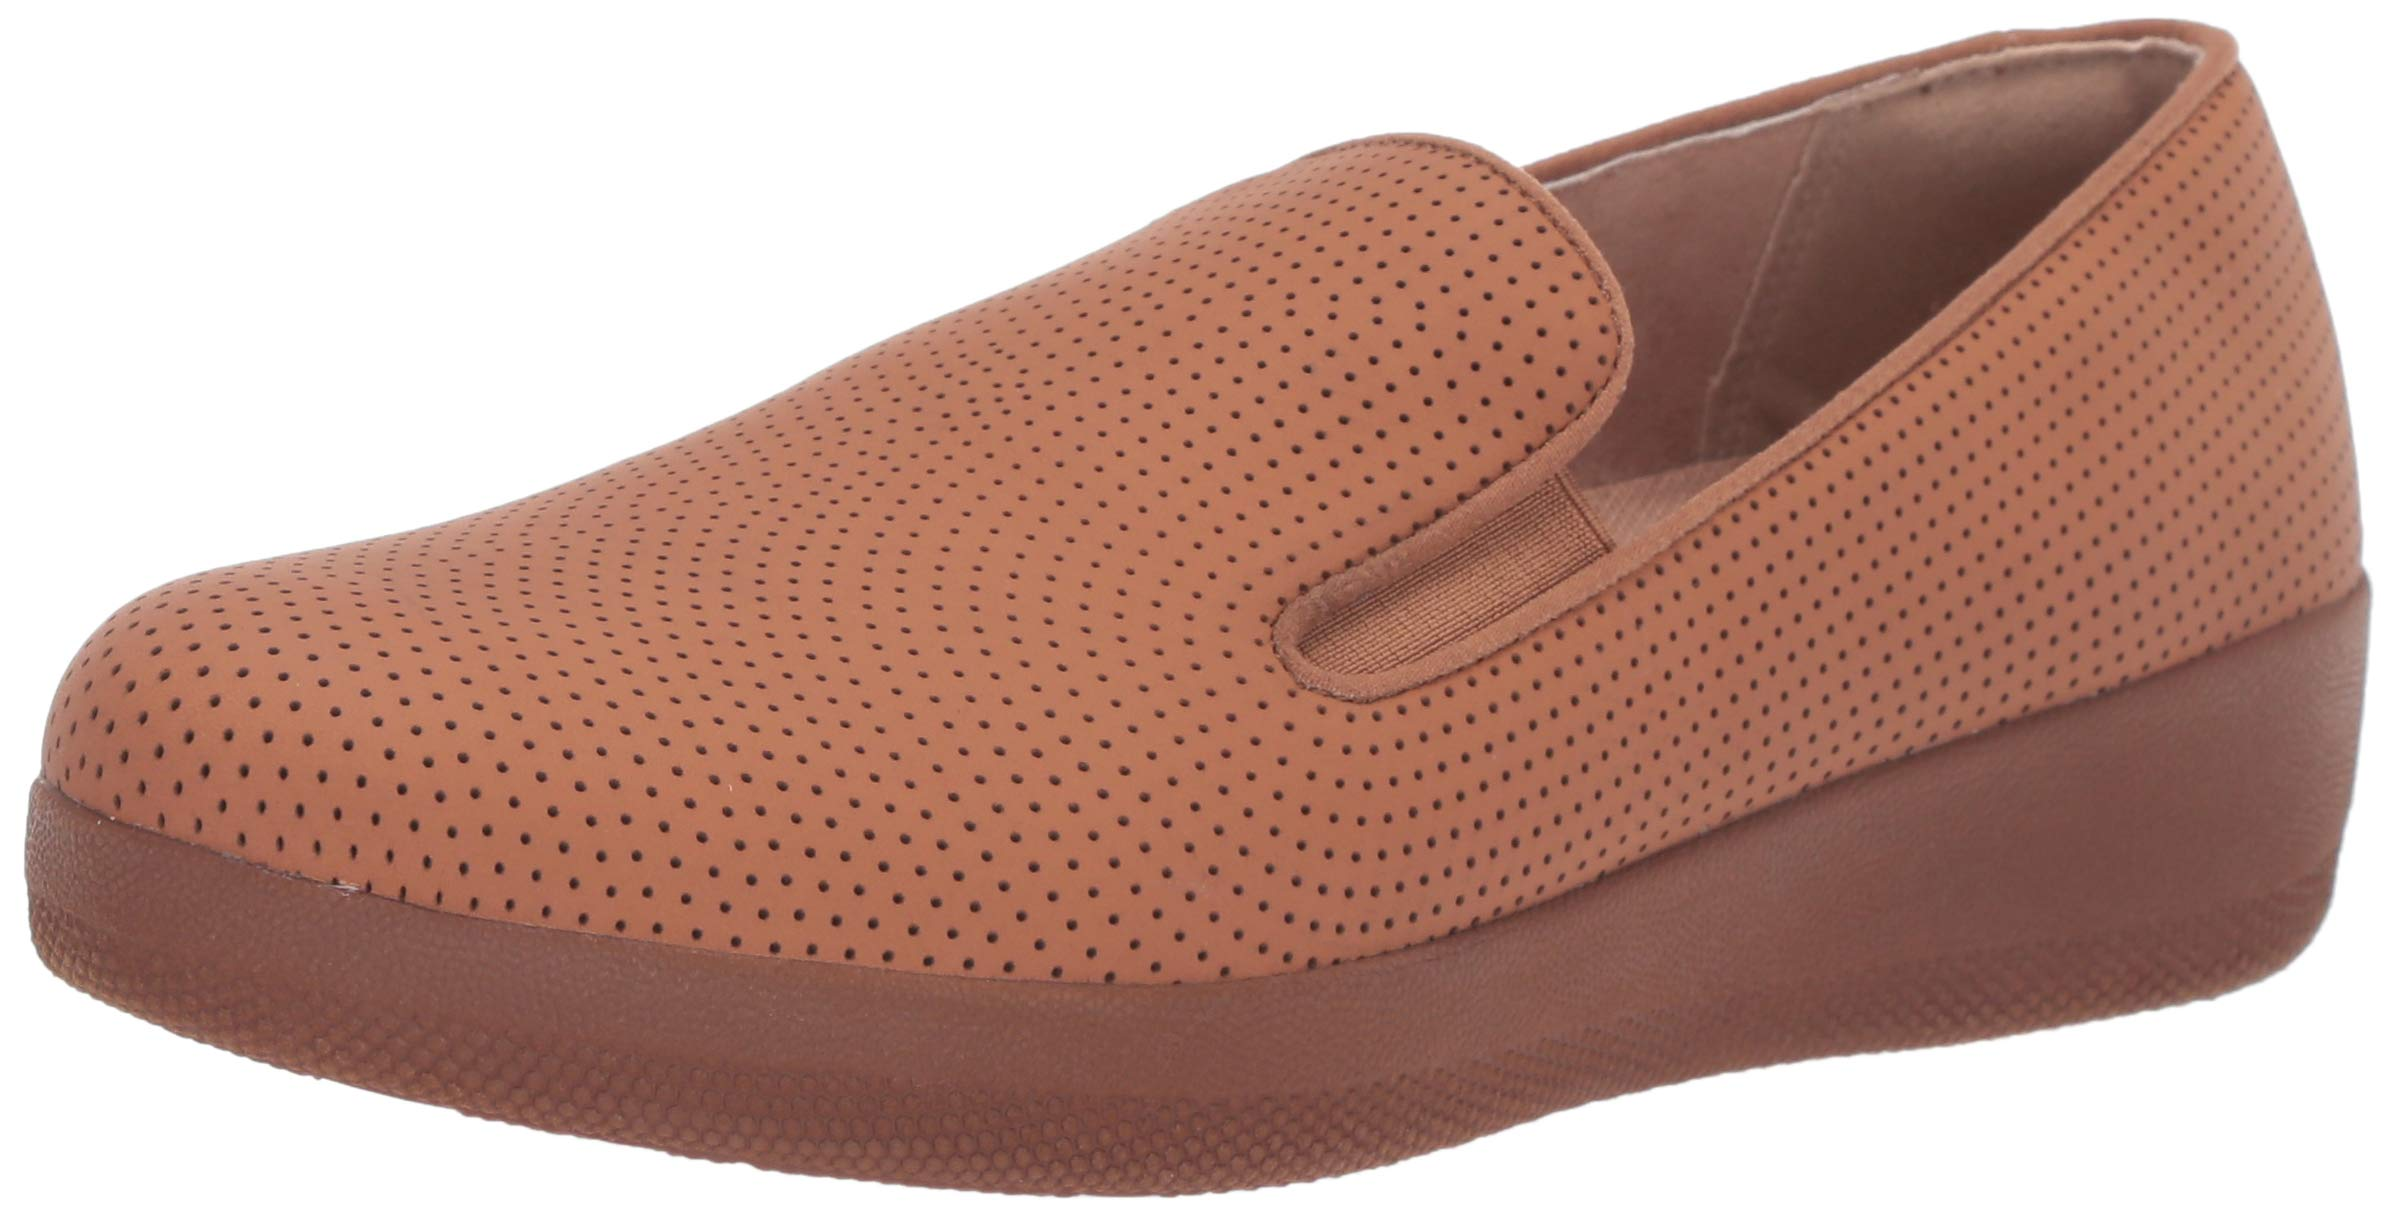 FITFLOP Women's Superskate Perforated Skate Shoe Light Tan 7.5 M US by FITFLOP